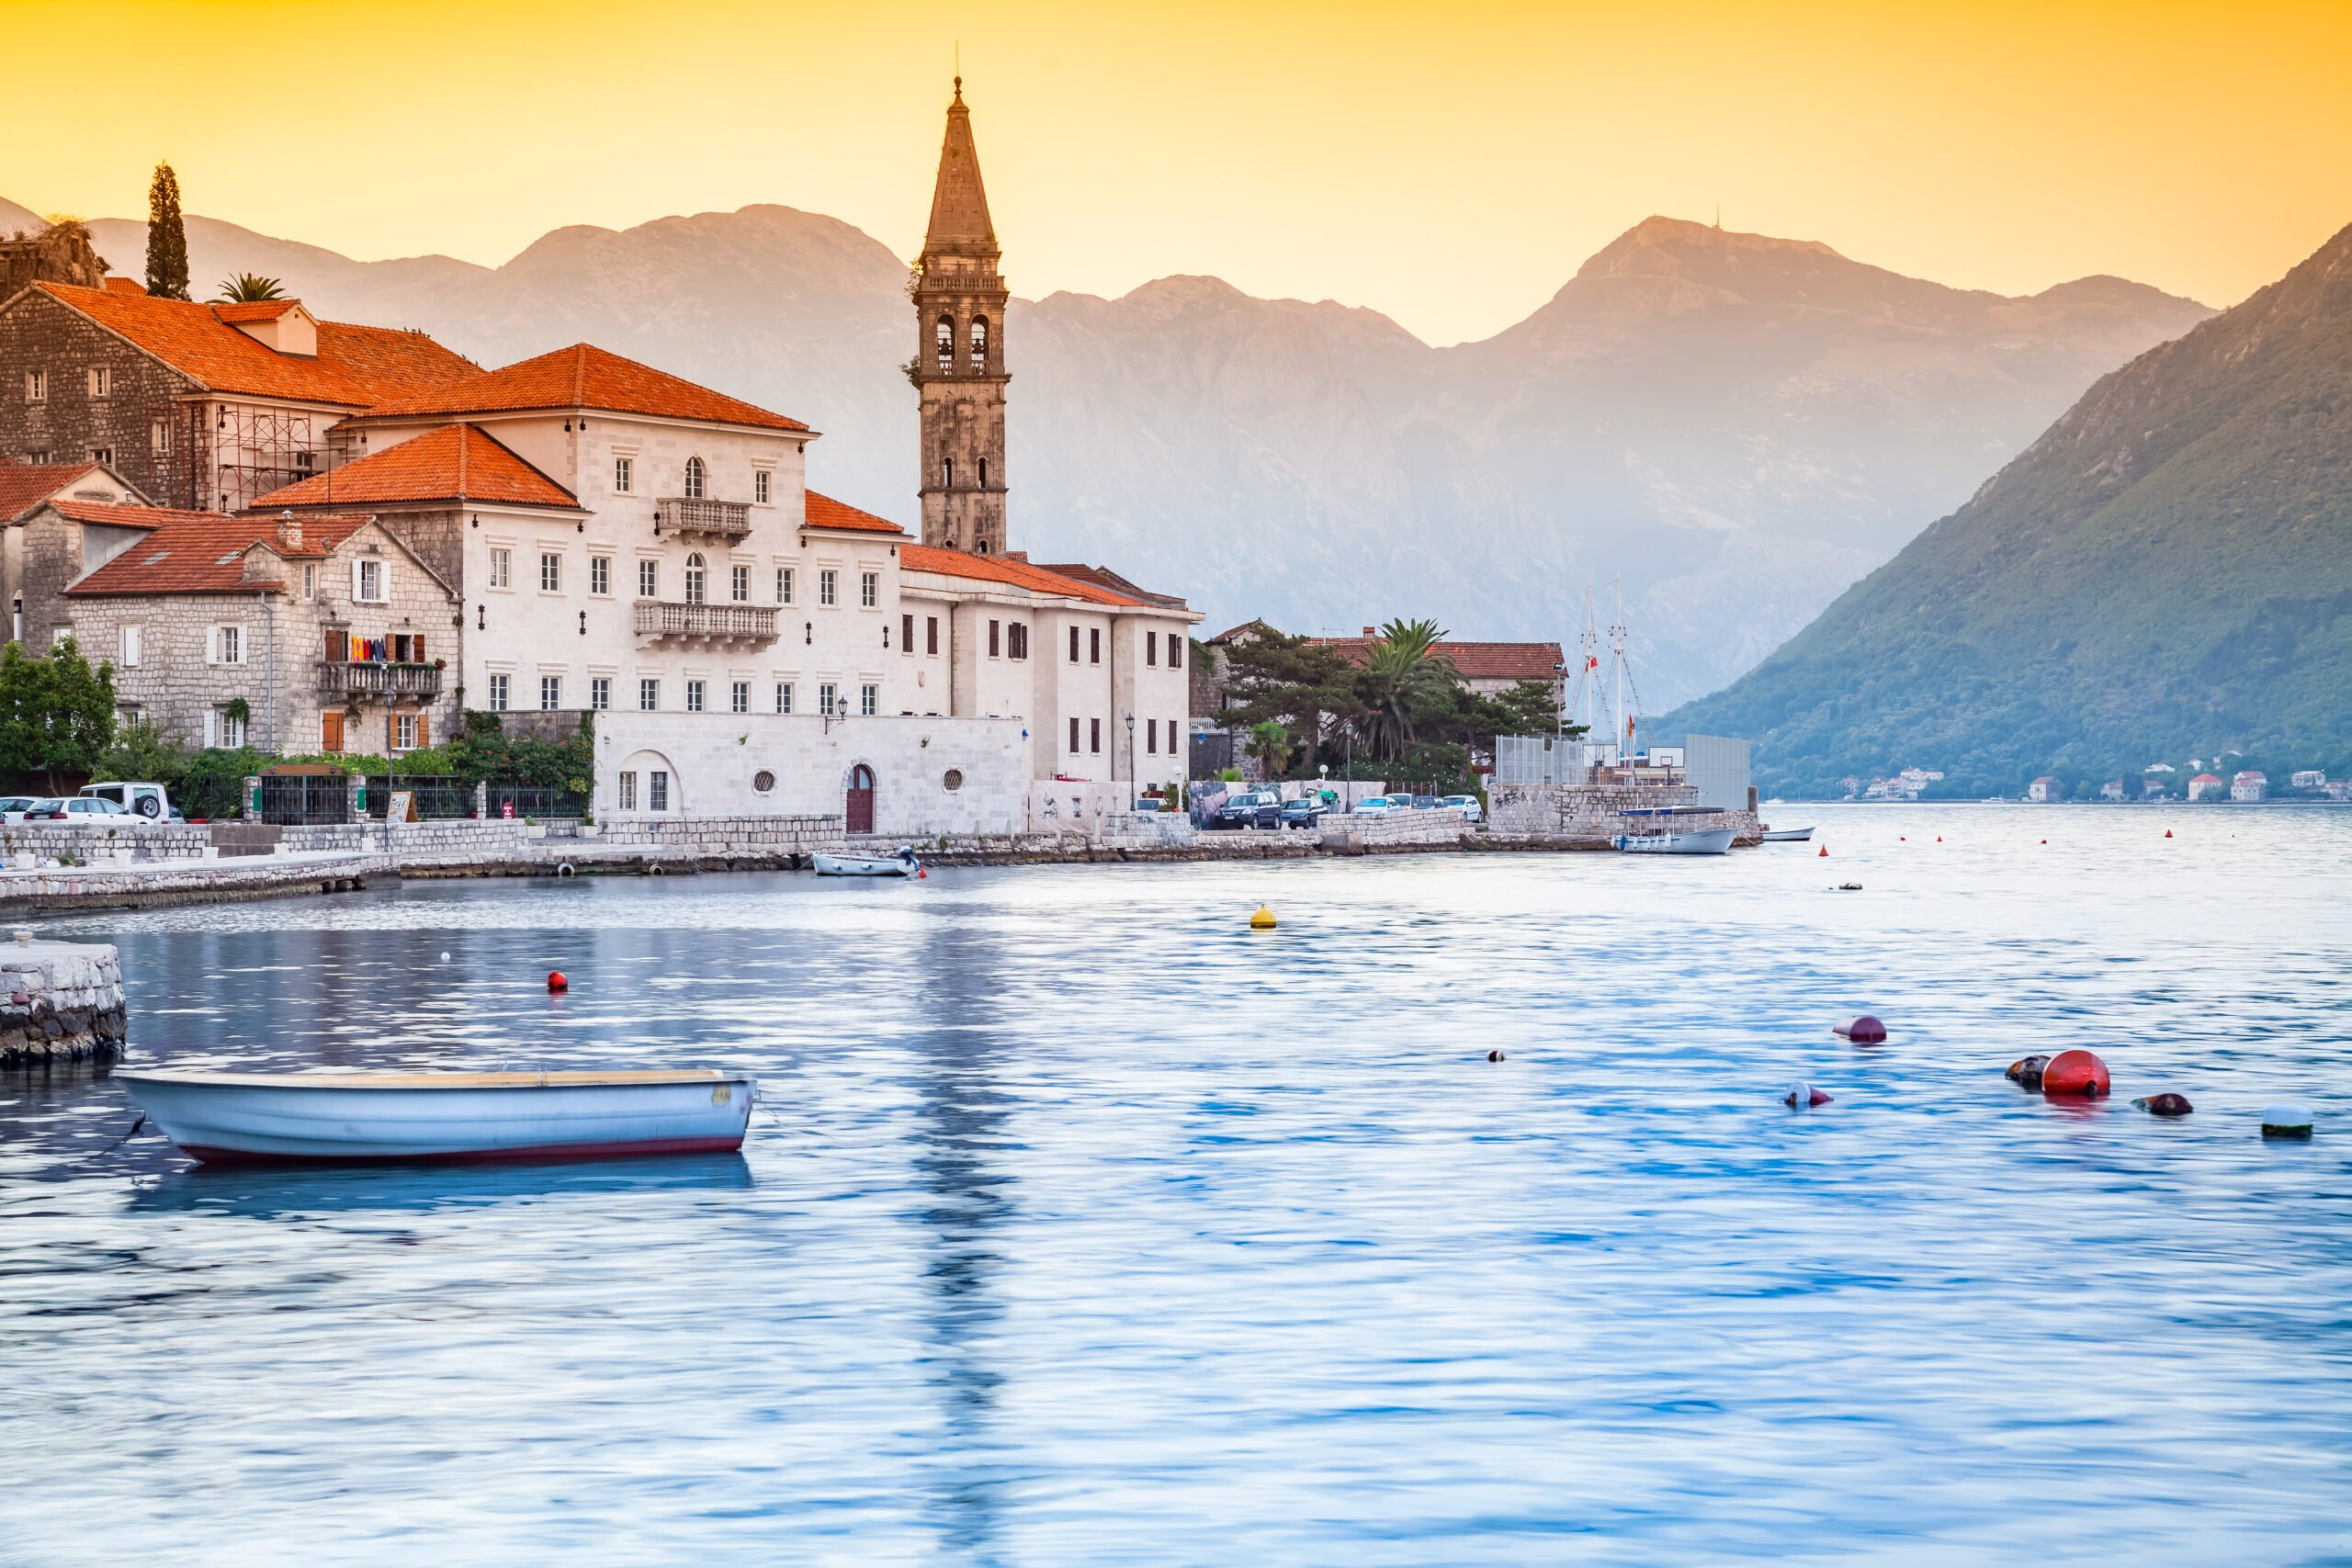 Enjoy The Beautiful View Of Kotor Old Town In Our Kotor Shore Tour